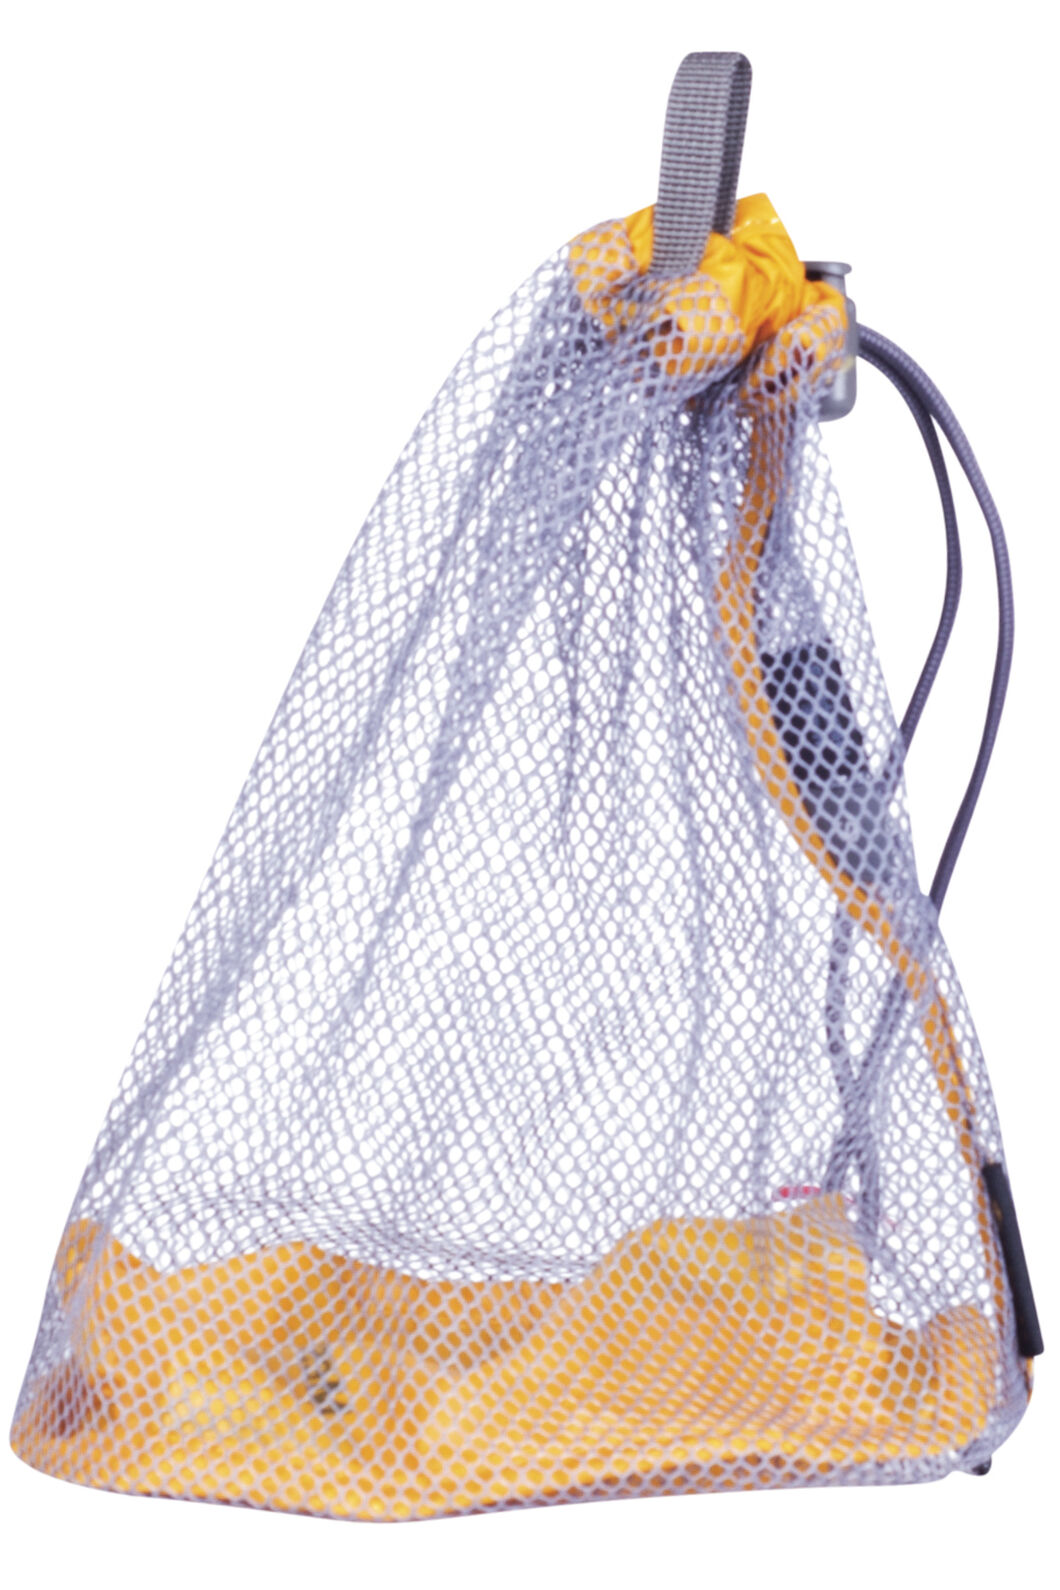 Macpac Mesh Stuff Sack Medium, Saffron, hi-res